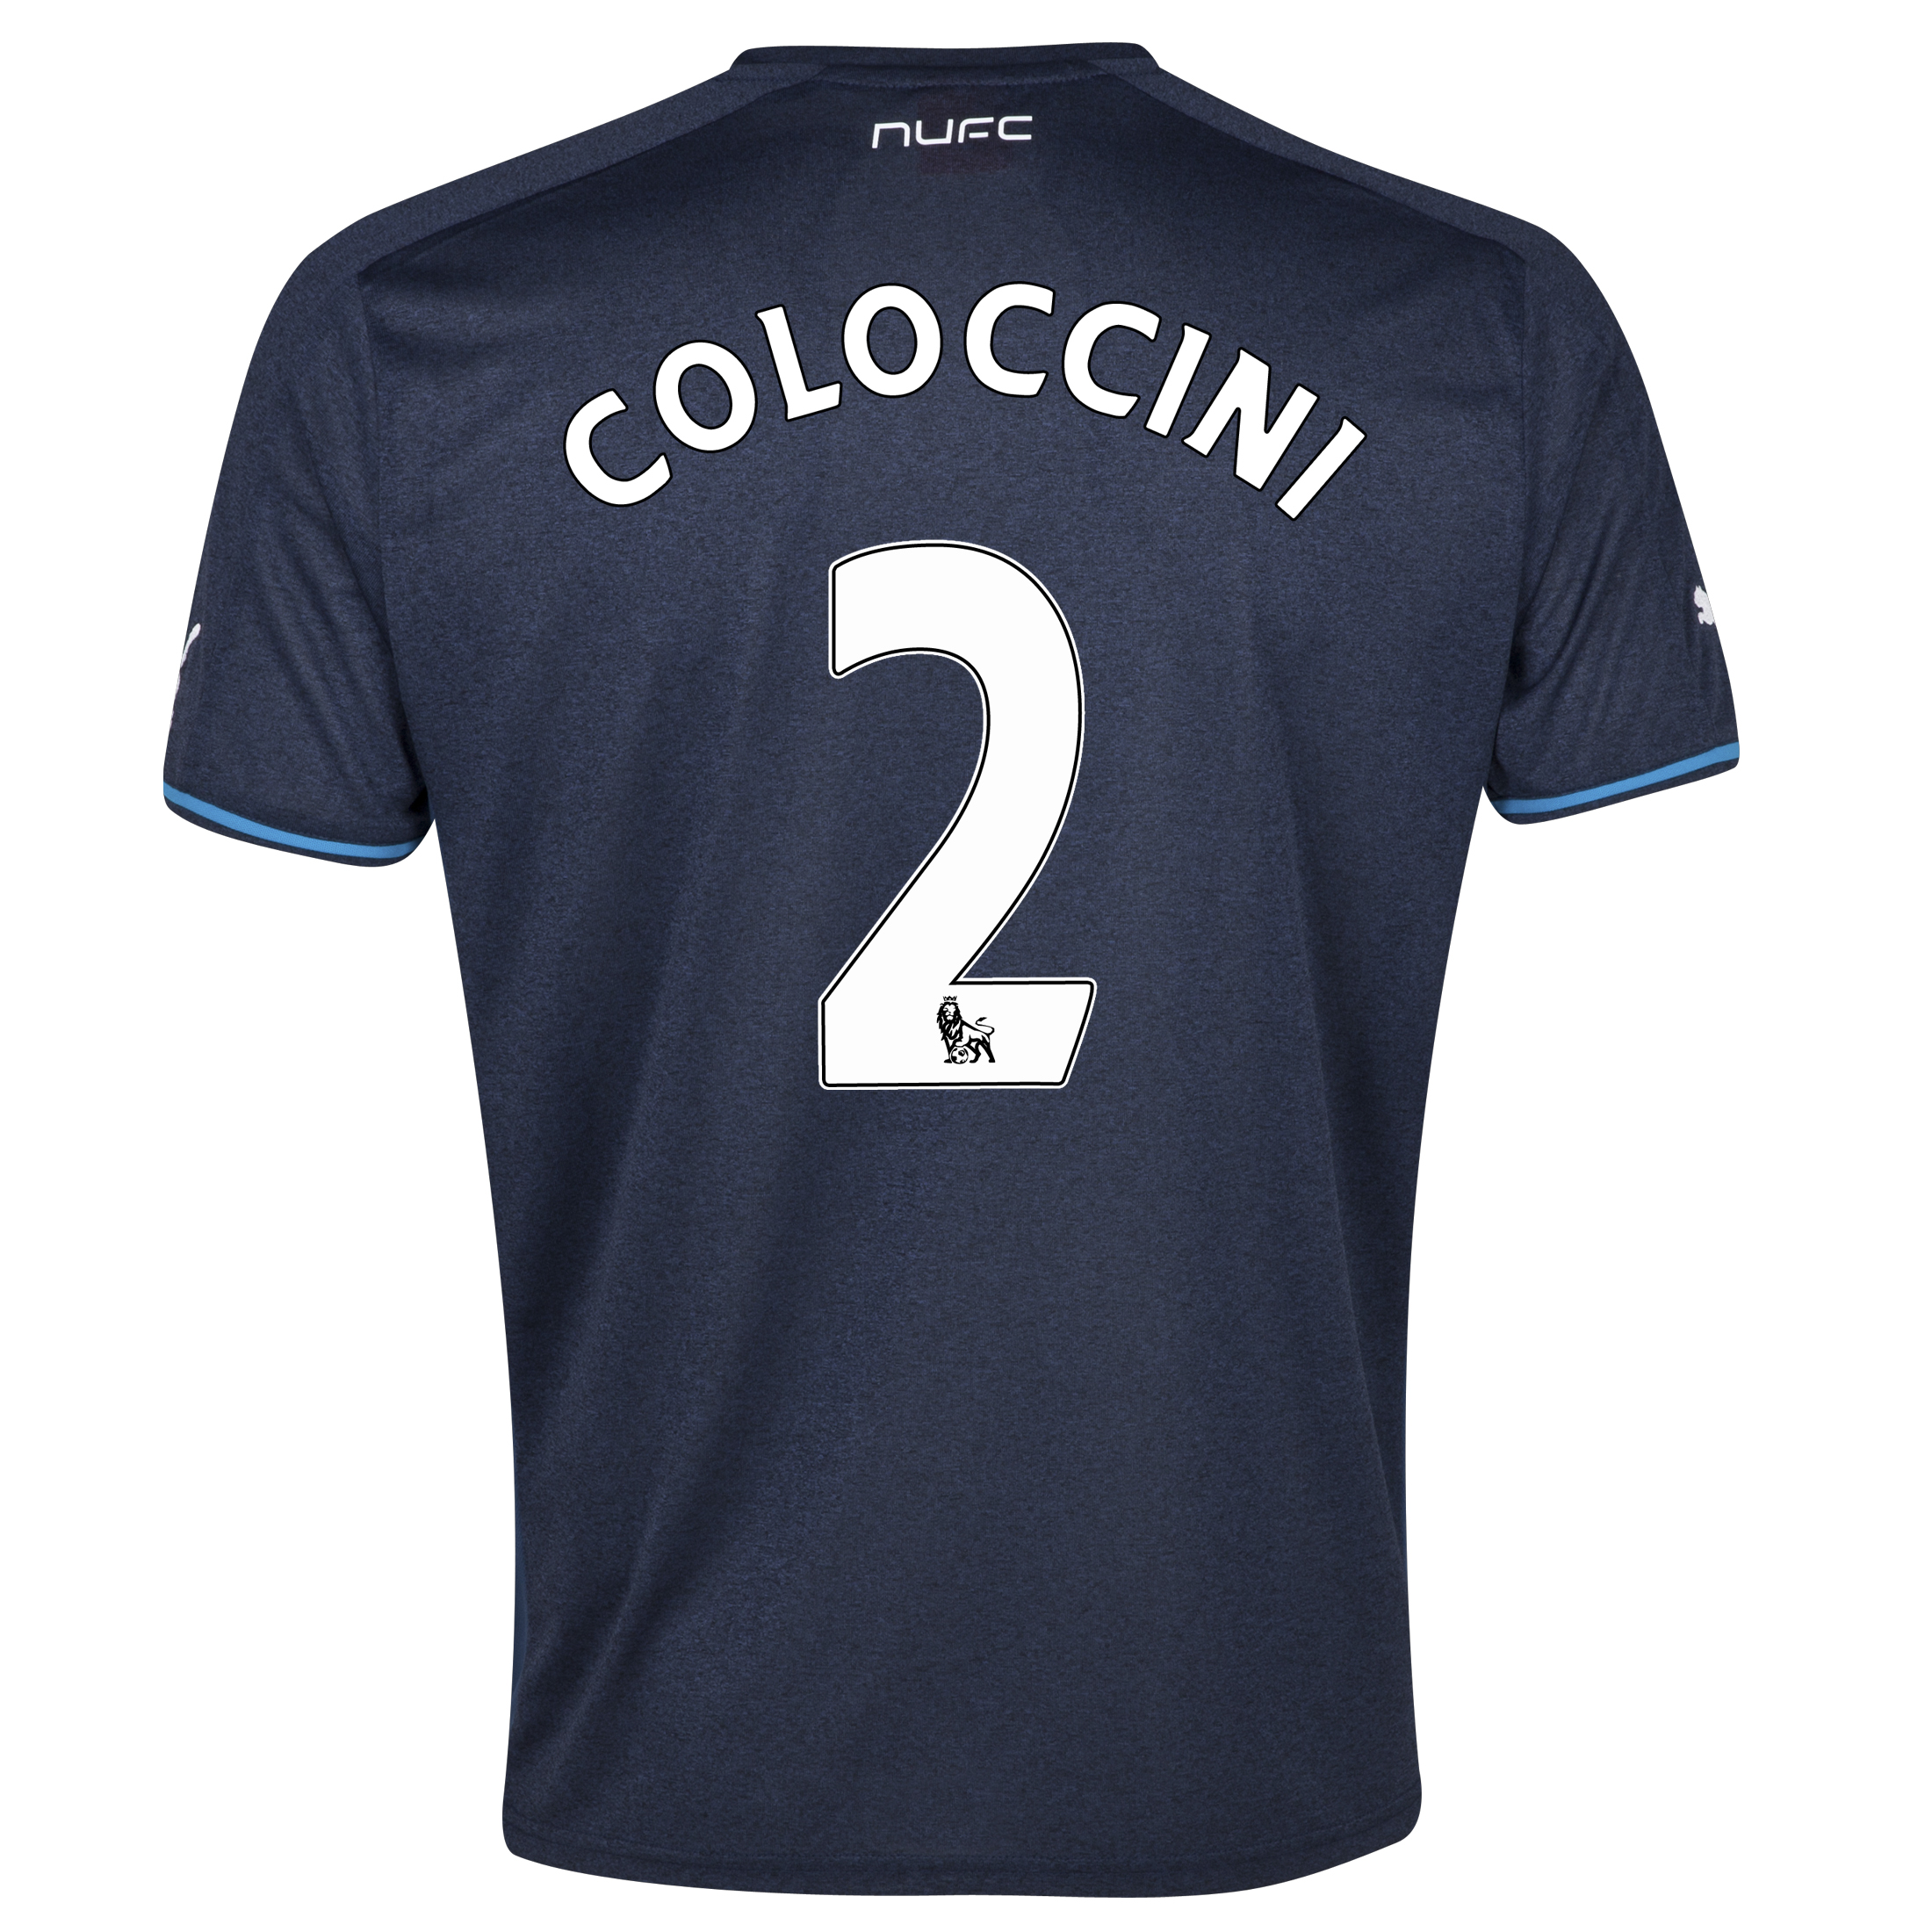 Newcastle United Away Shirt 2013/14 with Coloccini 2 printing